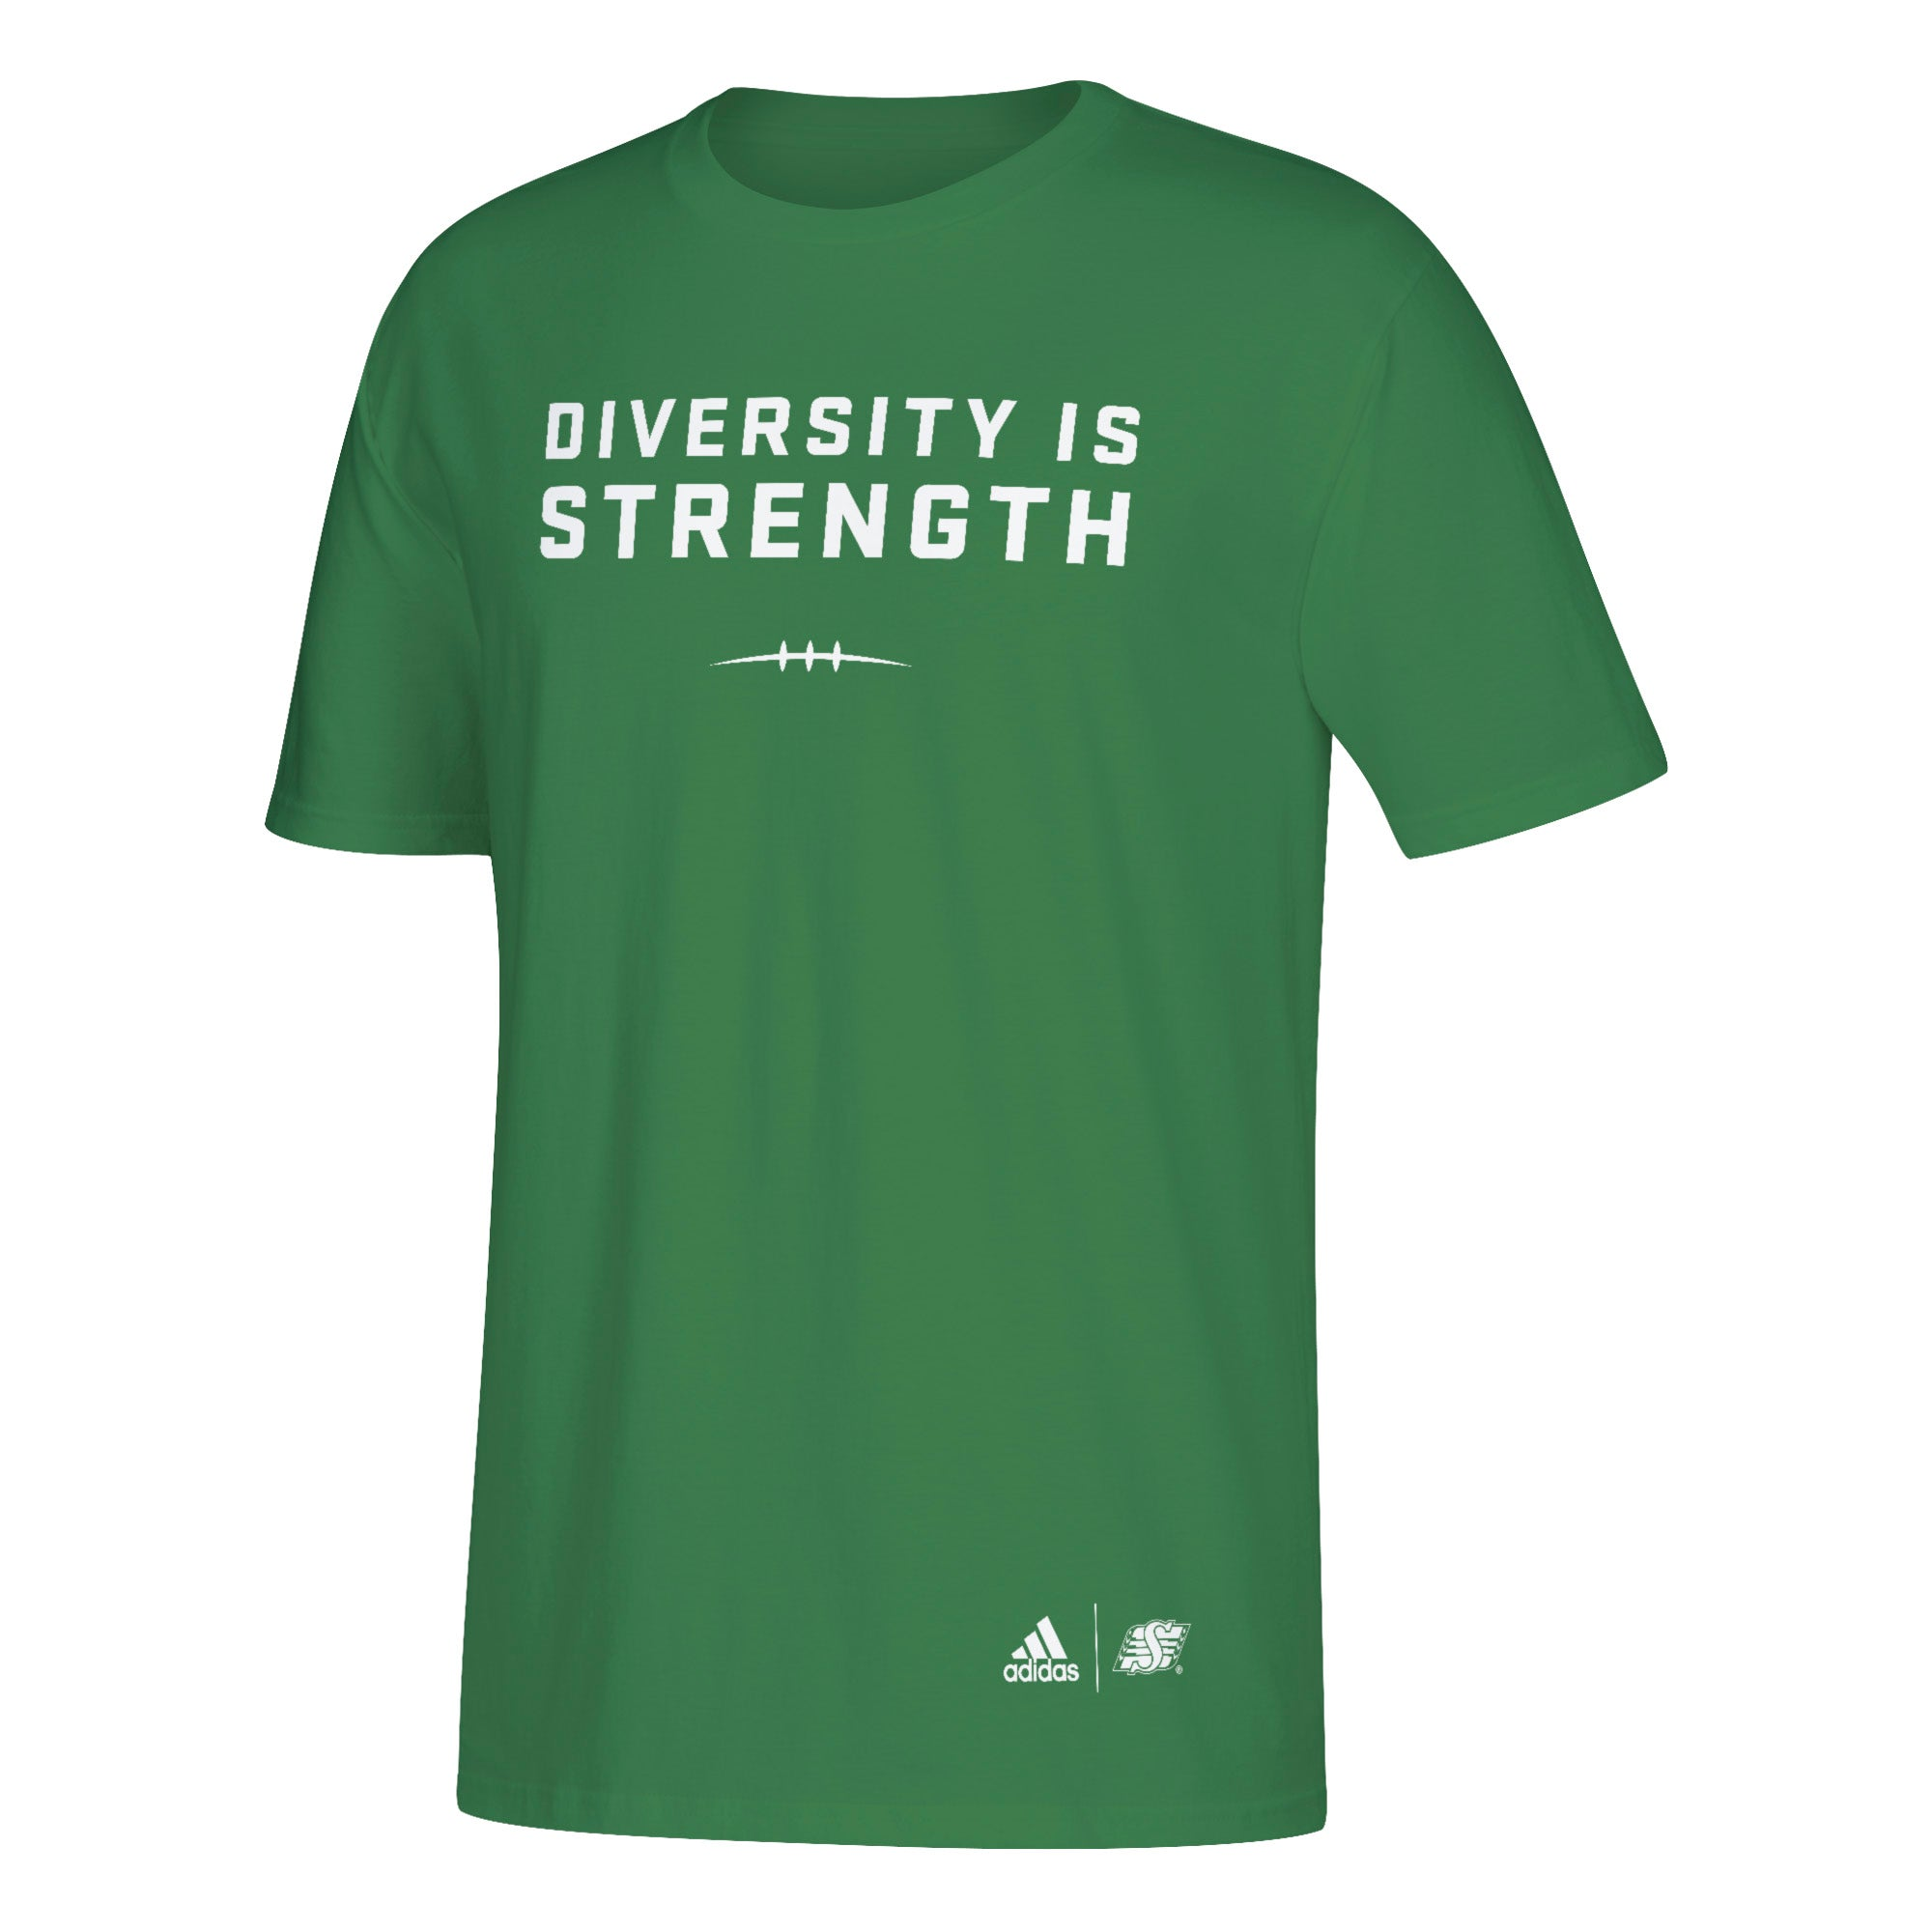 Saskatchewan Roughriders Diversity is Strength Shirt